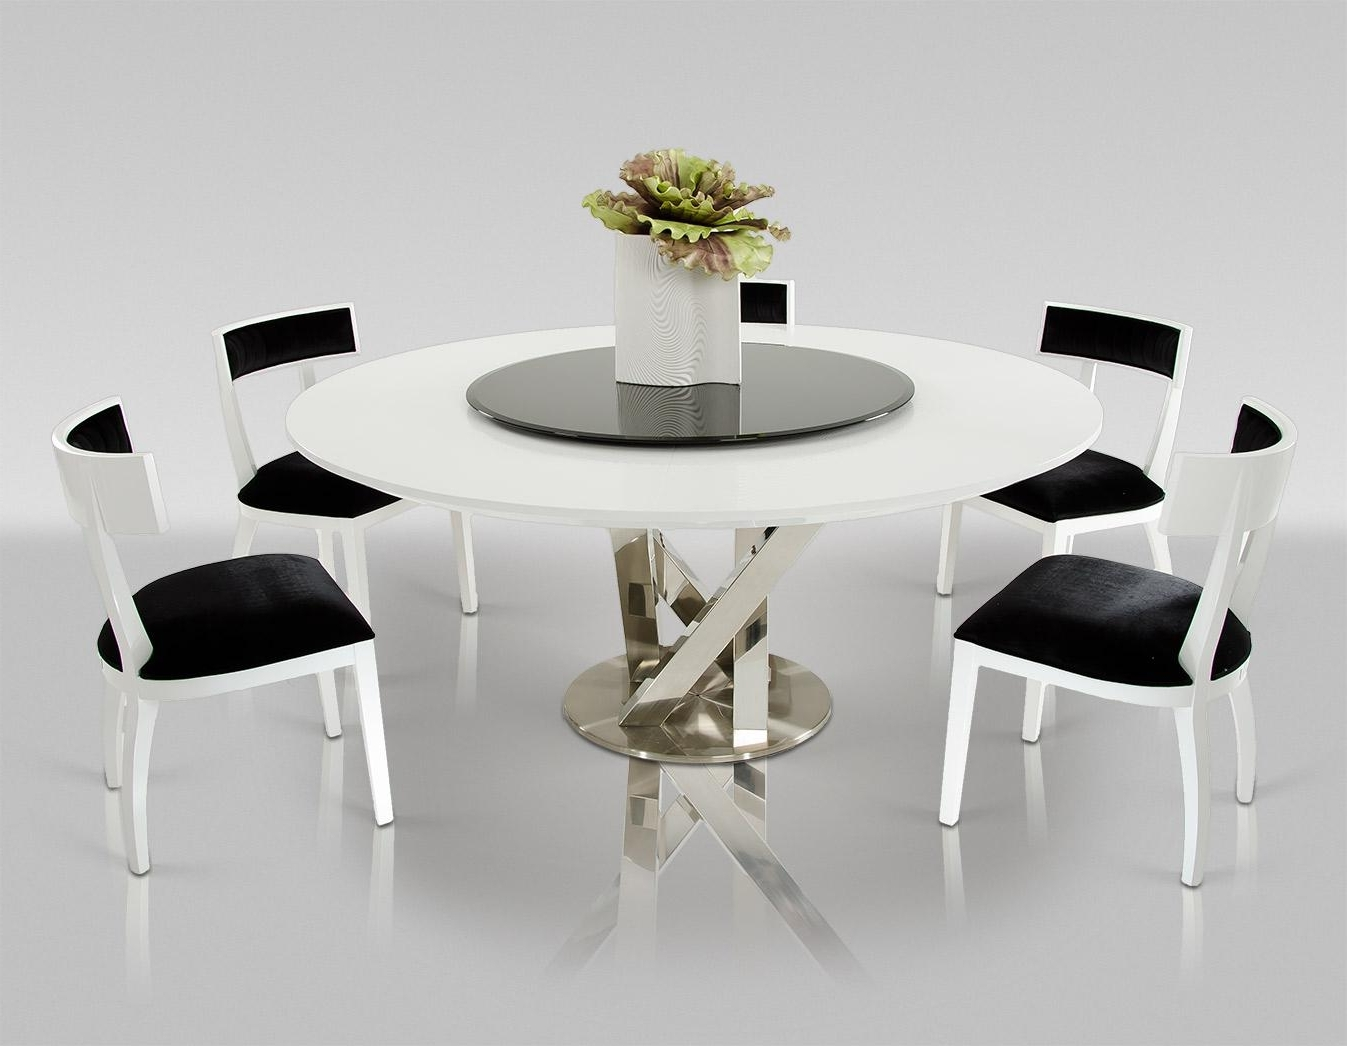 Ax Spiral Modern Round White Dining Table With Lazy Susan Dining Set With Regard To Current Contemporary Dining Room Tables And Chairs (Gallery 24 of 25)